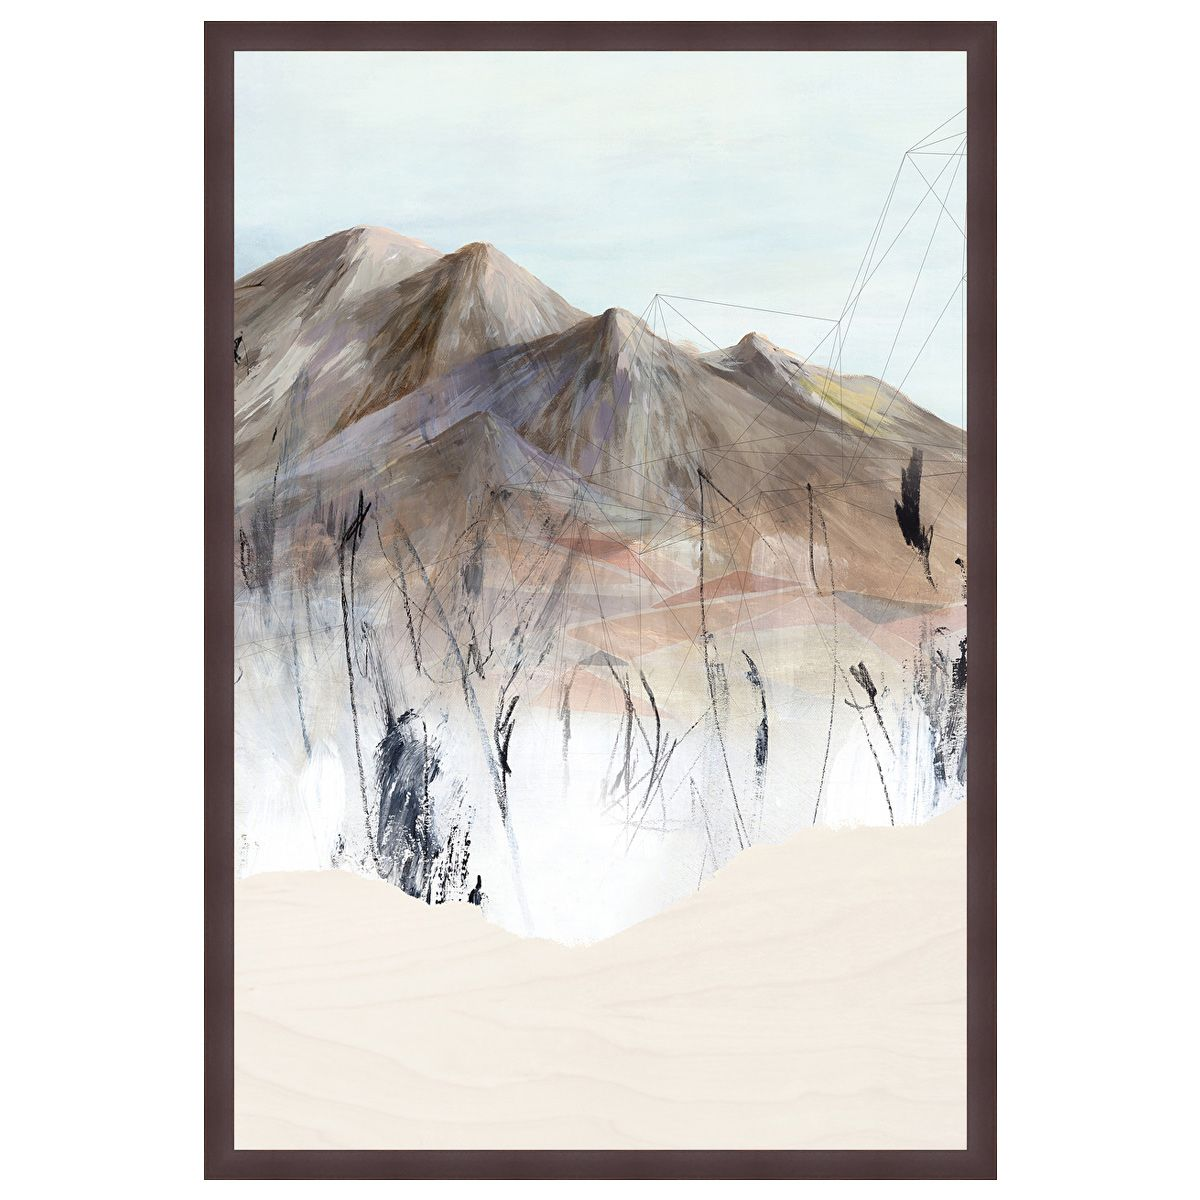 Deserted Mountain Village I Framed Canvas